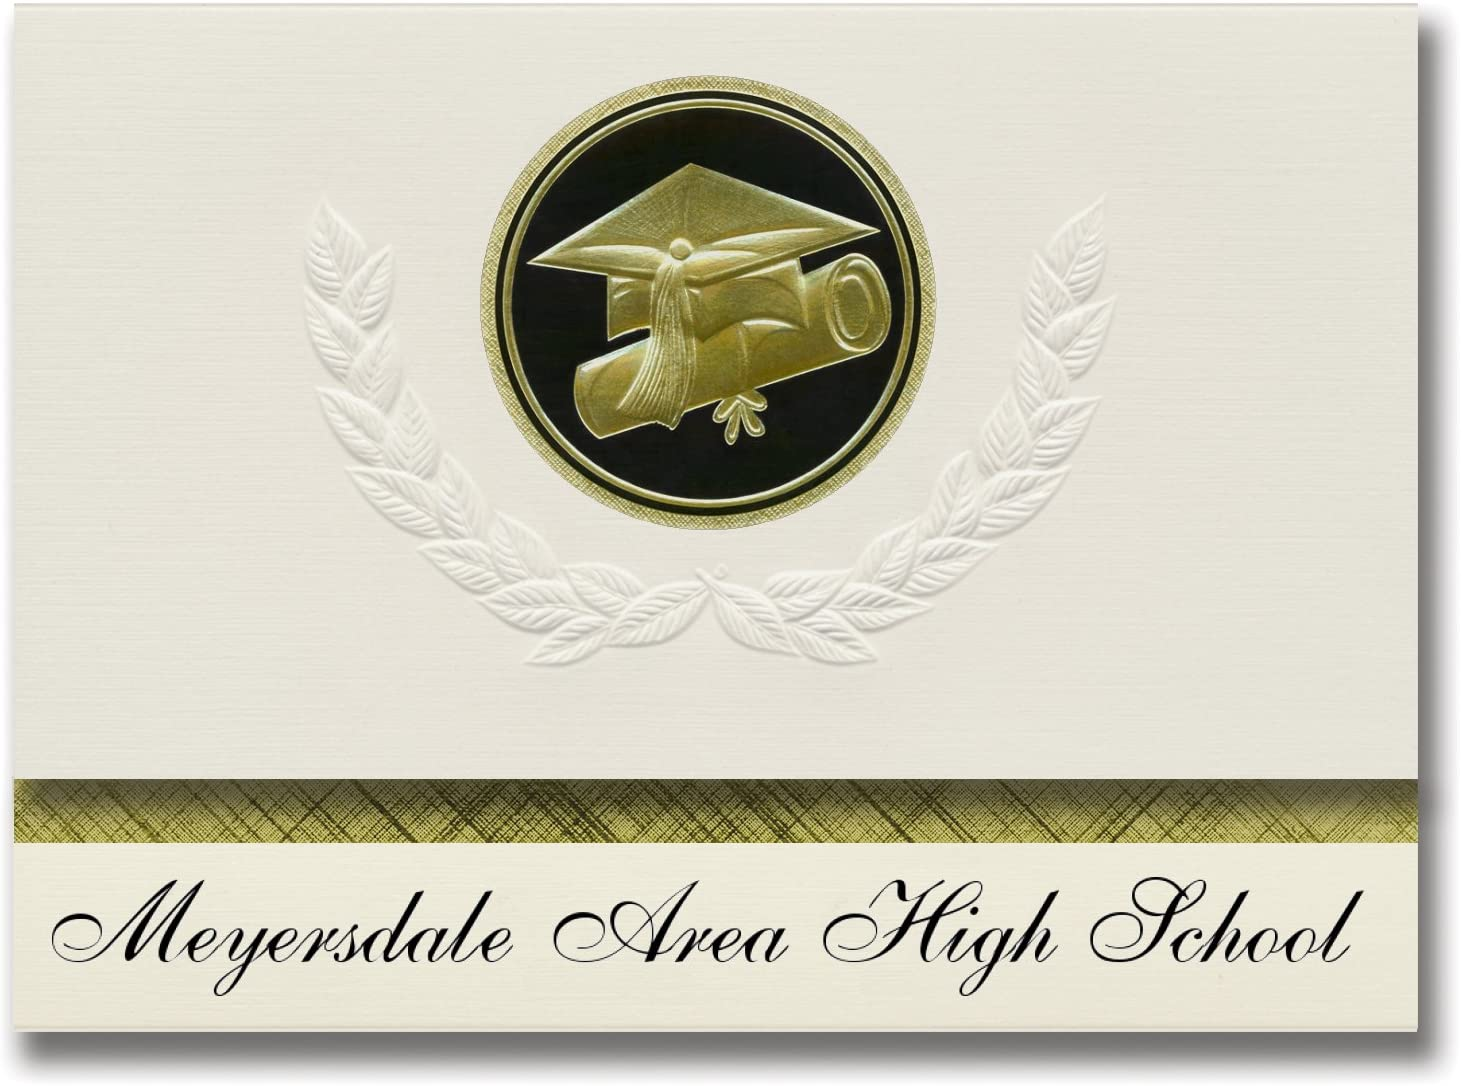 Signature Announcements Meyersdale Area High School (Meyersdale, PA) Graduation Announcements, Presidential style, Elite package of 25 Cap & Diploma Seal Black & Gold